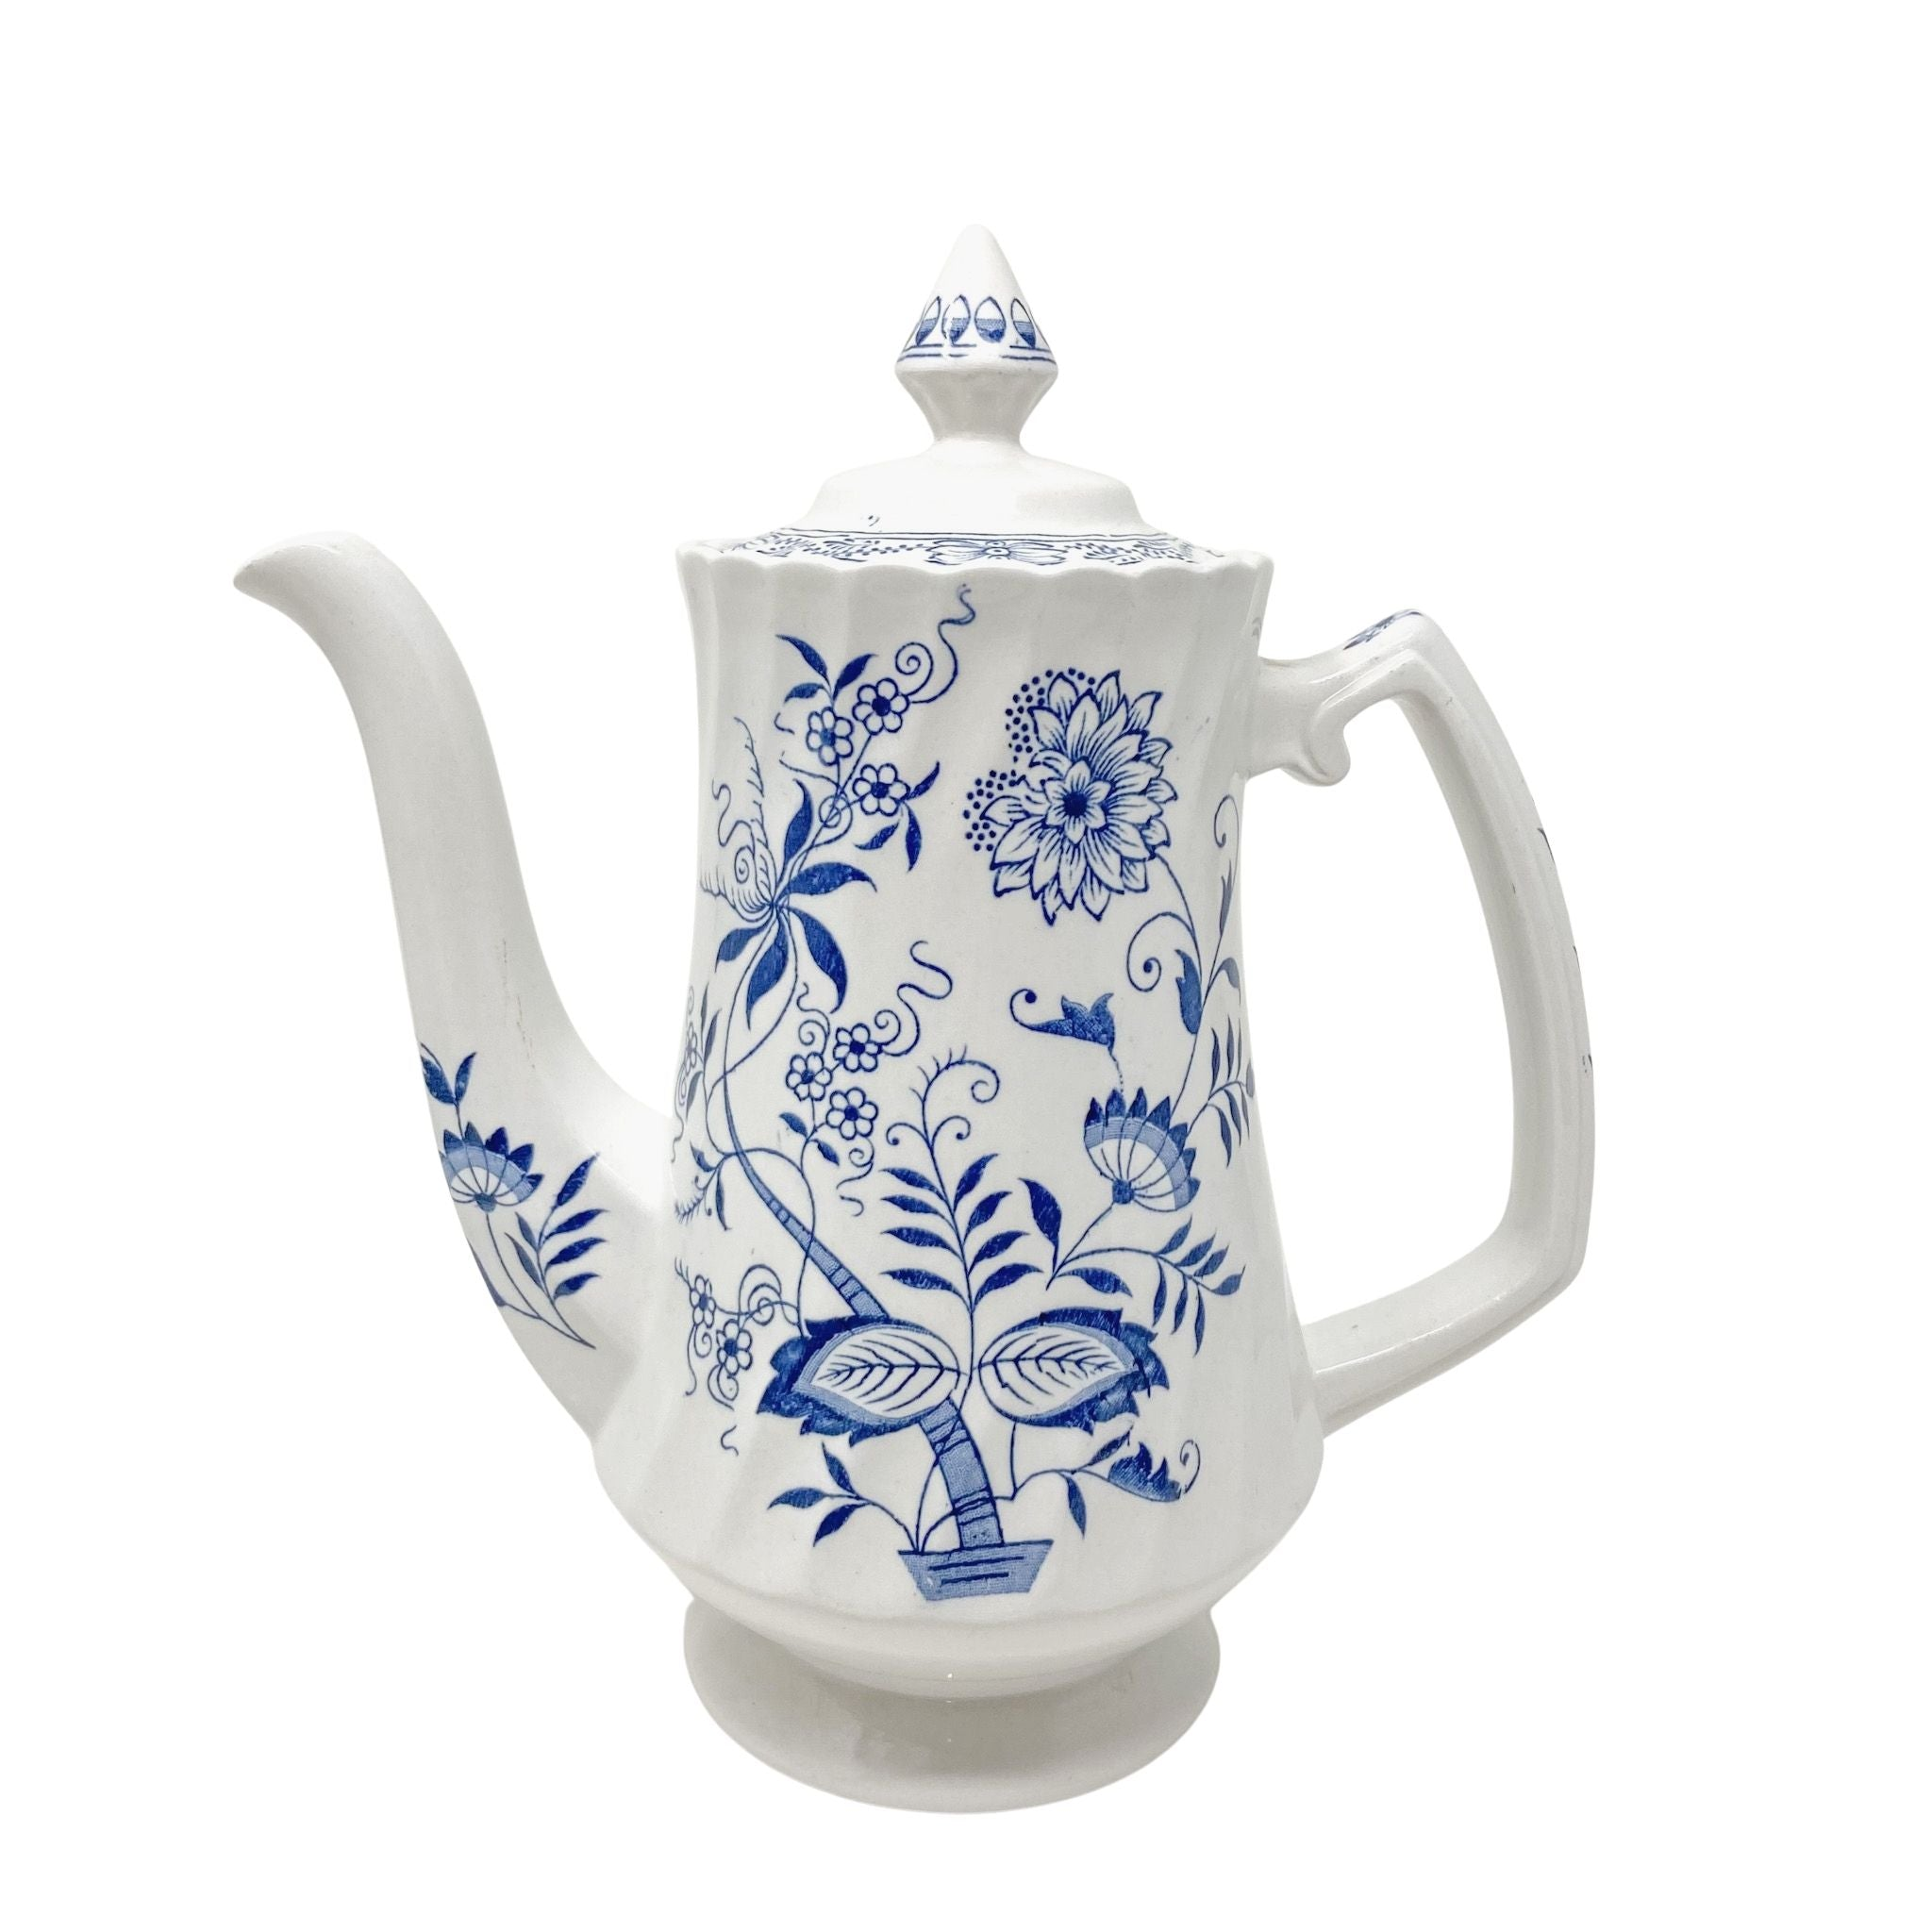 Tall transferware blue and white coffee pot Blue Fjord Ironstone Wood & Sons England Genuine Hand Engraving Detergent Proof Old Staffordshire floral design scalloped rim on handle and spout